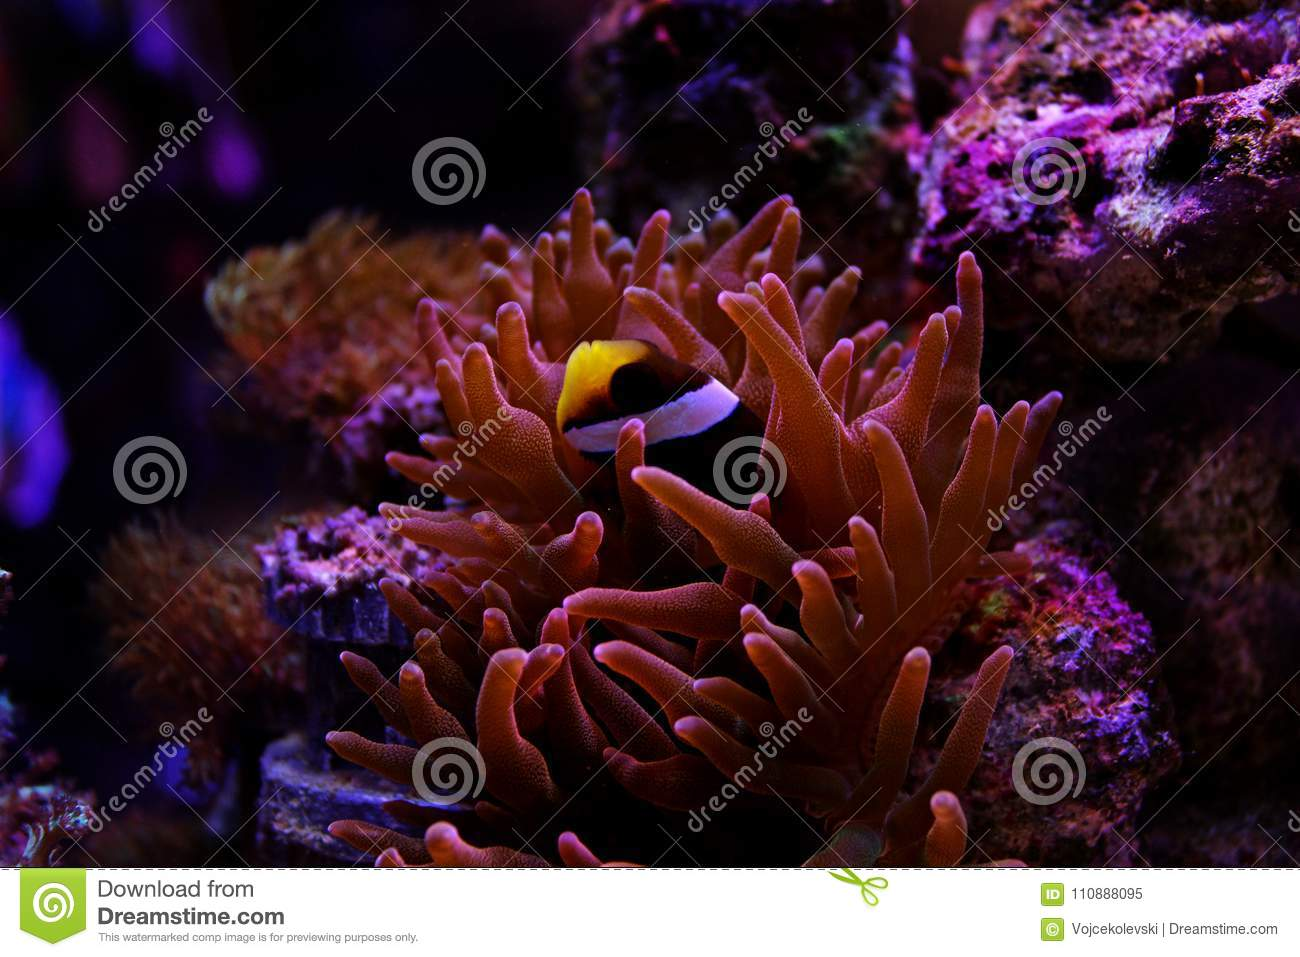 Clarkii Clownfish - Amphiprion Clarkii Stock Image - Image of fish ...